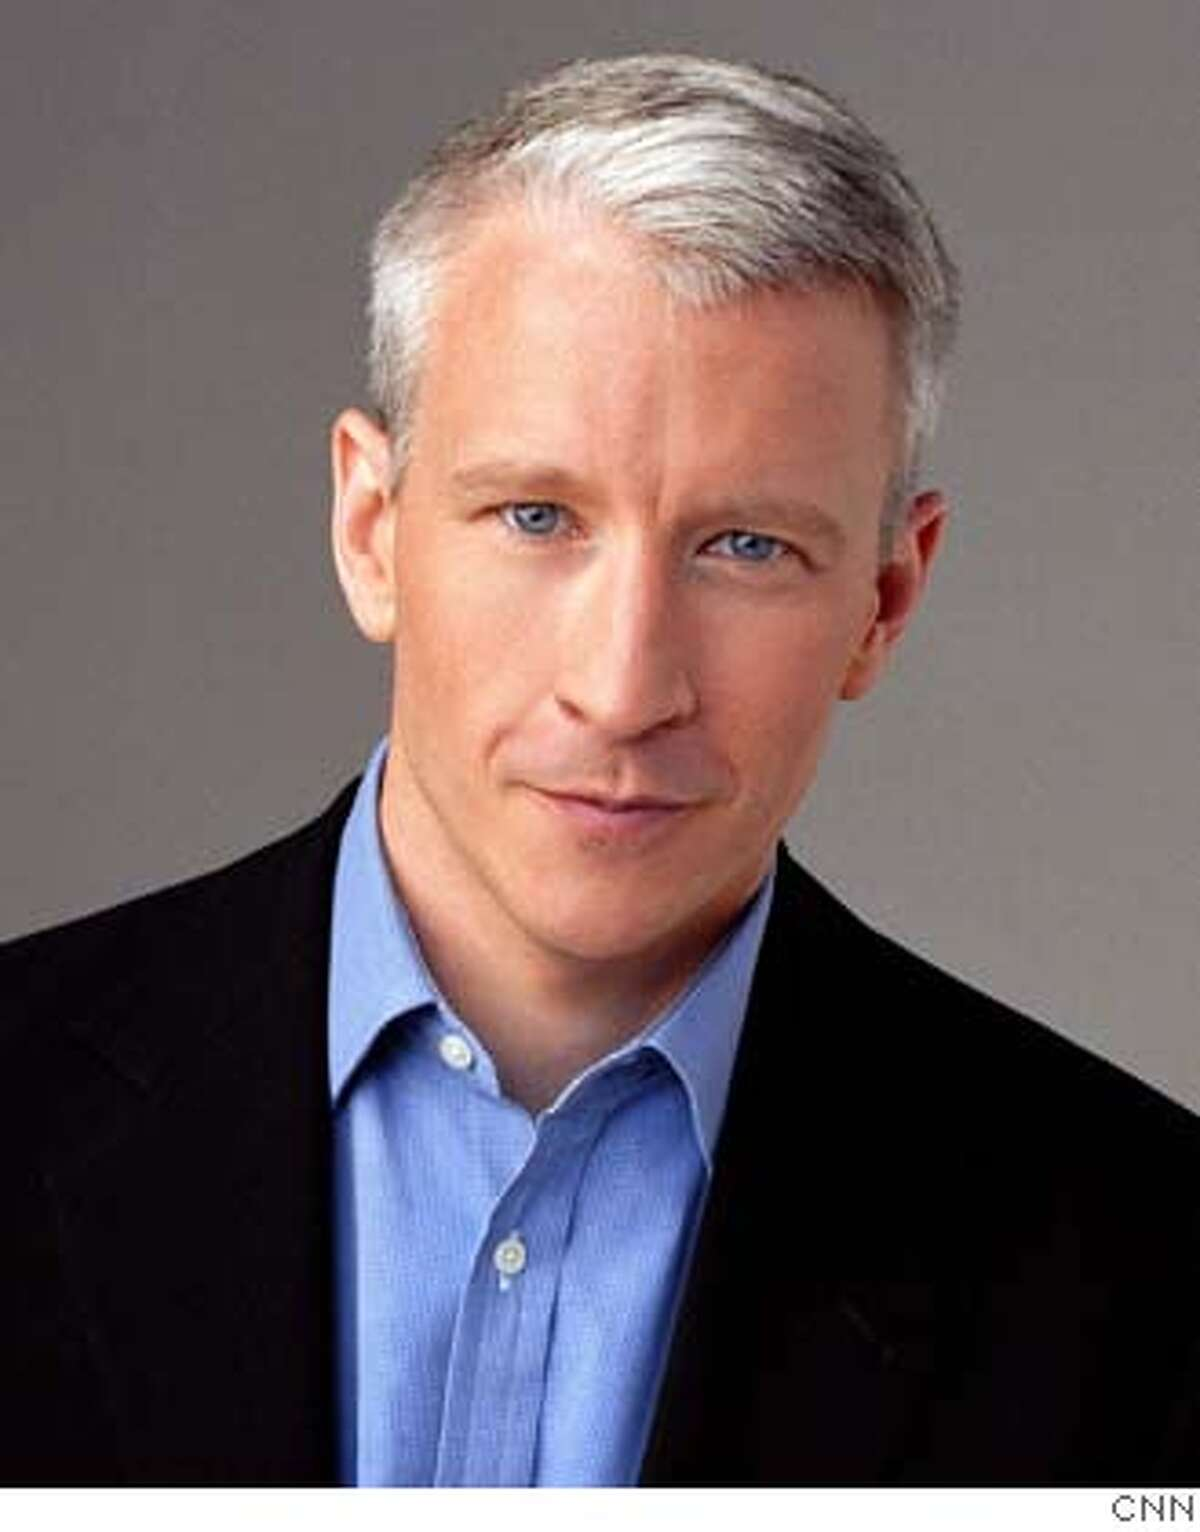 """CNN news anchor Anderson Cooper, shown in this undated publicity photograph, will take the helm of a live news program from 10 p.m. to midnight (EST) (1700 GMT to 1900 GMT), on CNN beginning November 7, 2005. Cooper, who has reported from the scene of major news events such as Hurricane Katrina, the famine in Niger, the Terry Schiavo case and the war in Iraq, will continue his program """"Anderson Cooper 360�"""" in its new time slot. NO ARCHIVES REUTERS/CNN/Handout 0"""